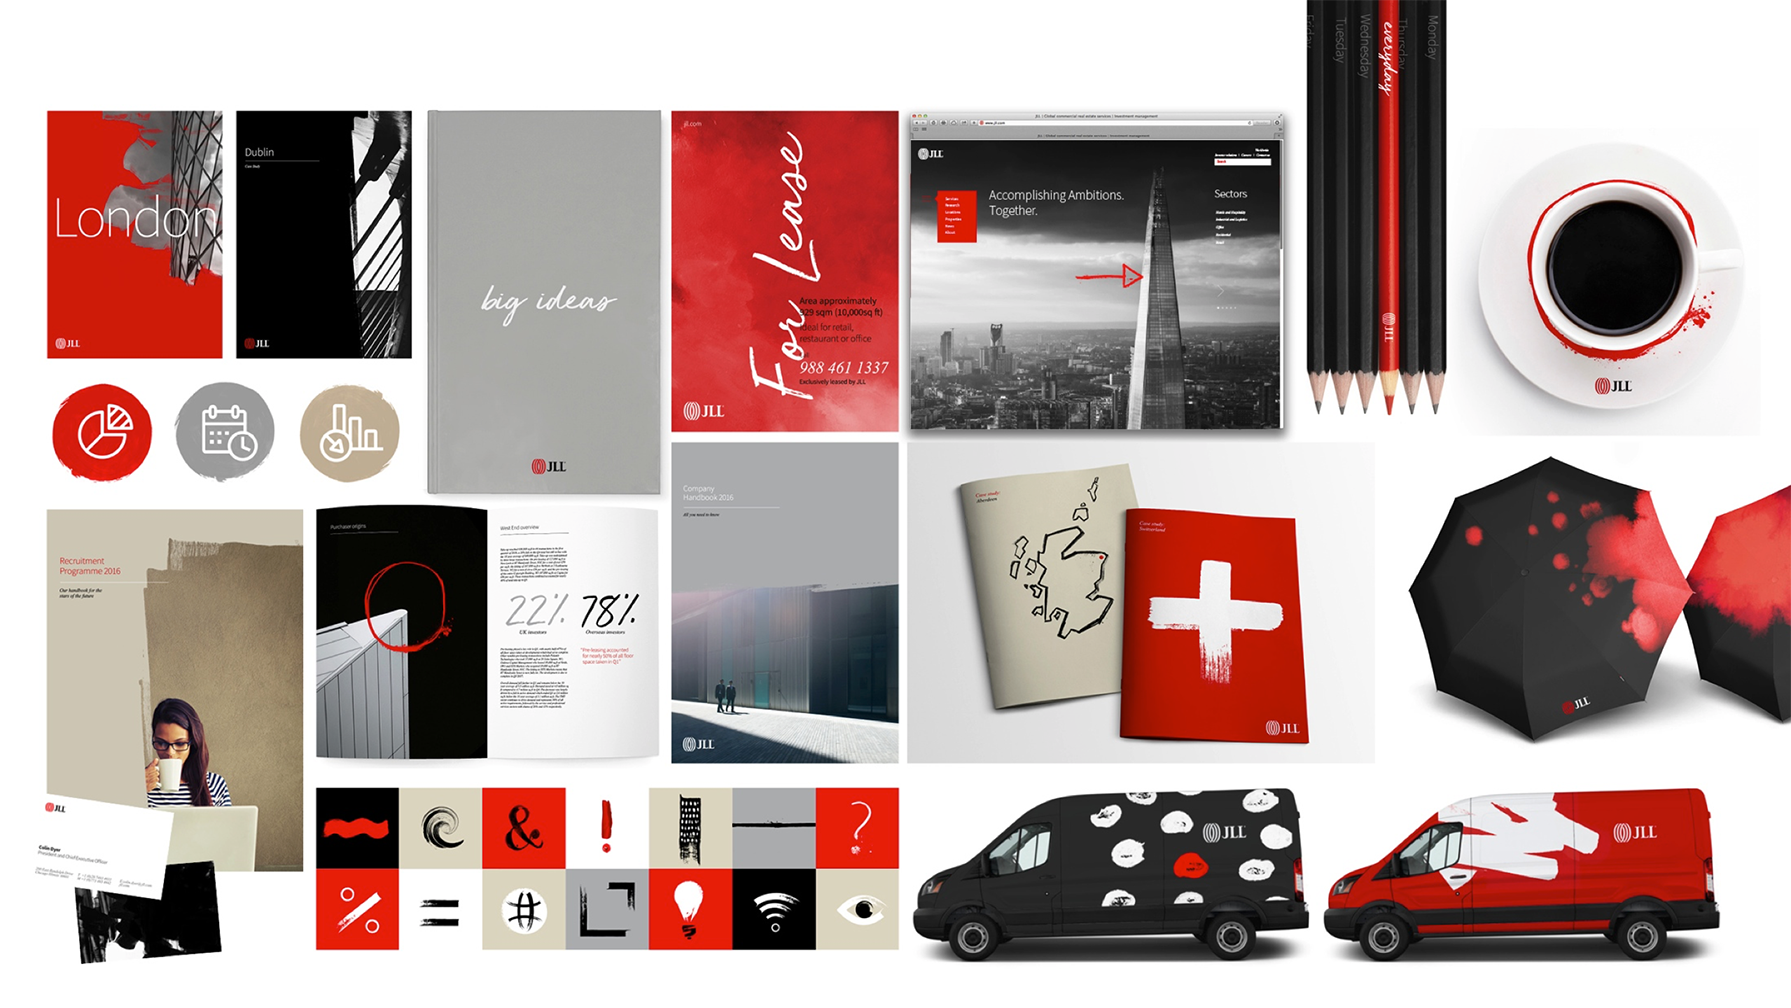 JLL brand collateral overview